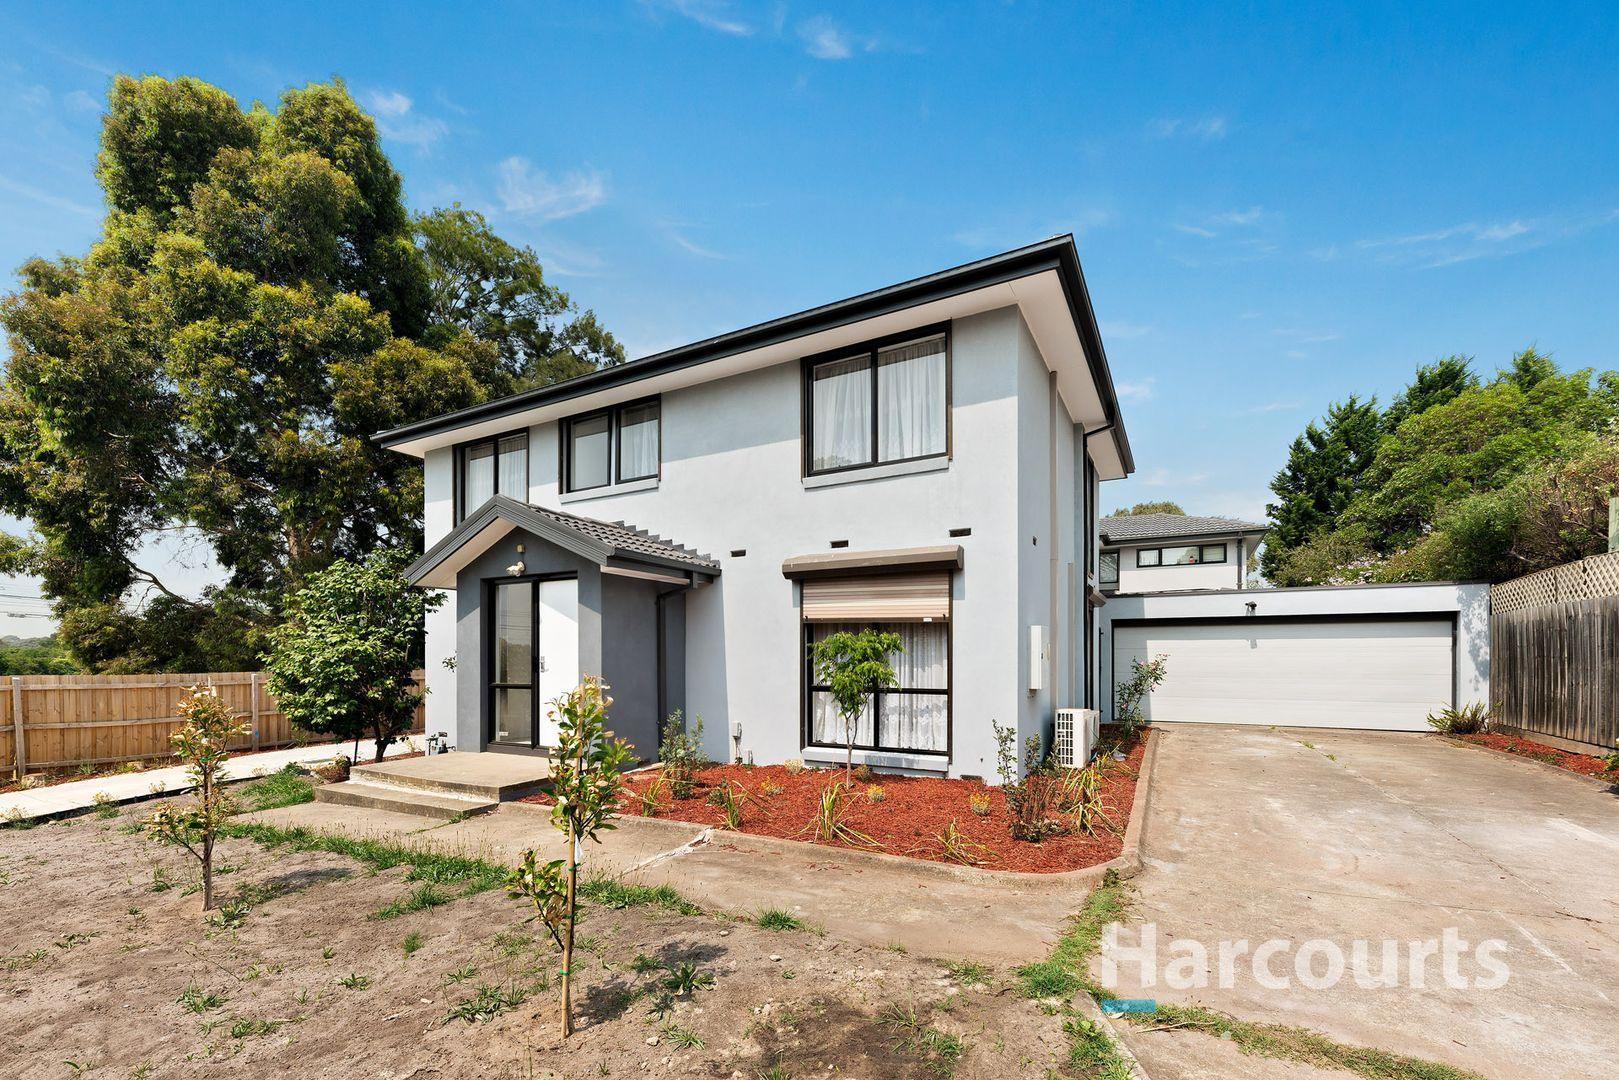 1/44 Stokes Road, Wantirna VIC 3152, Image 0